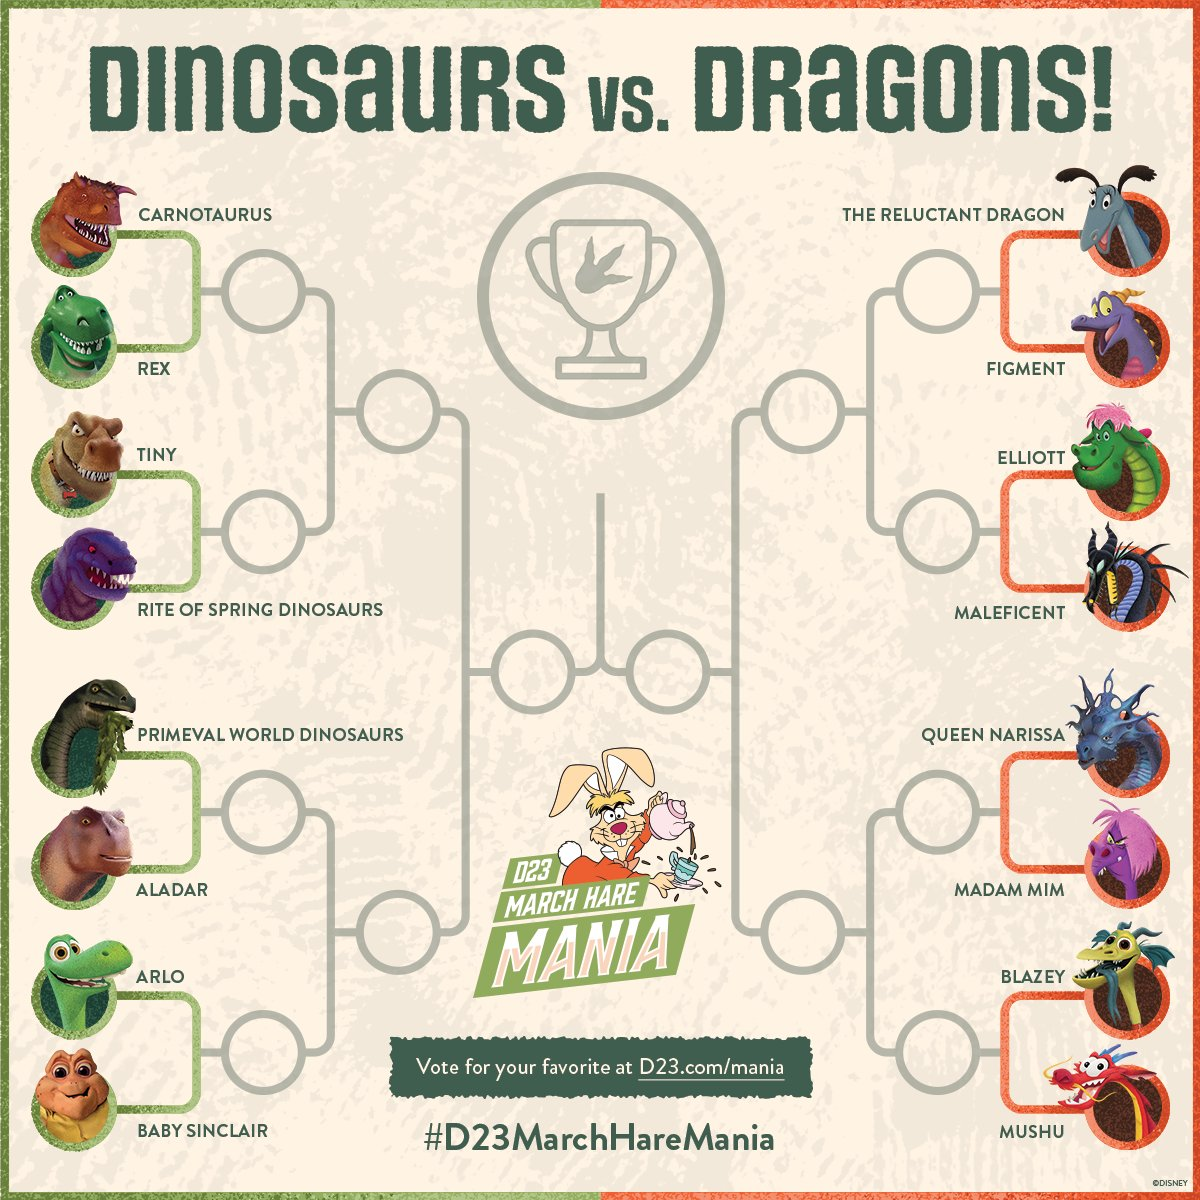 Vote for your favorite Disney dinos (and dragons) in the #D23MarchHareMania bracket: